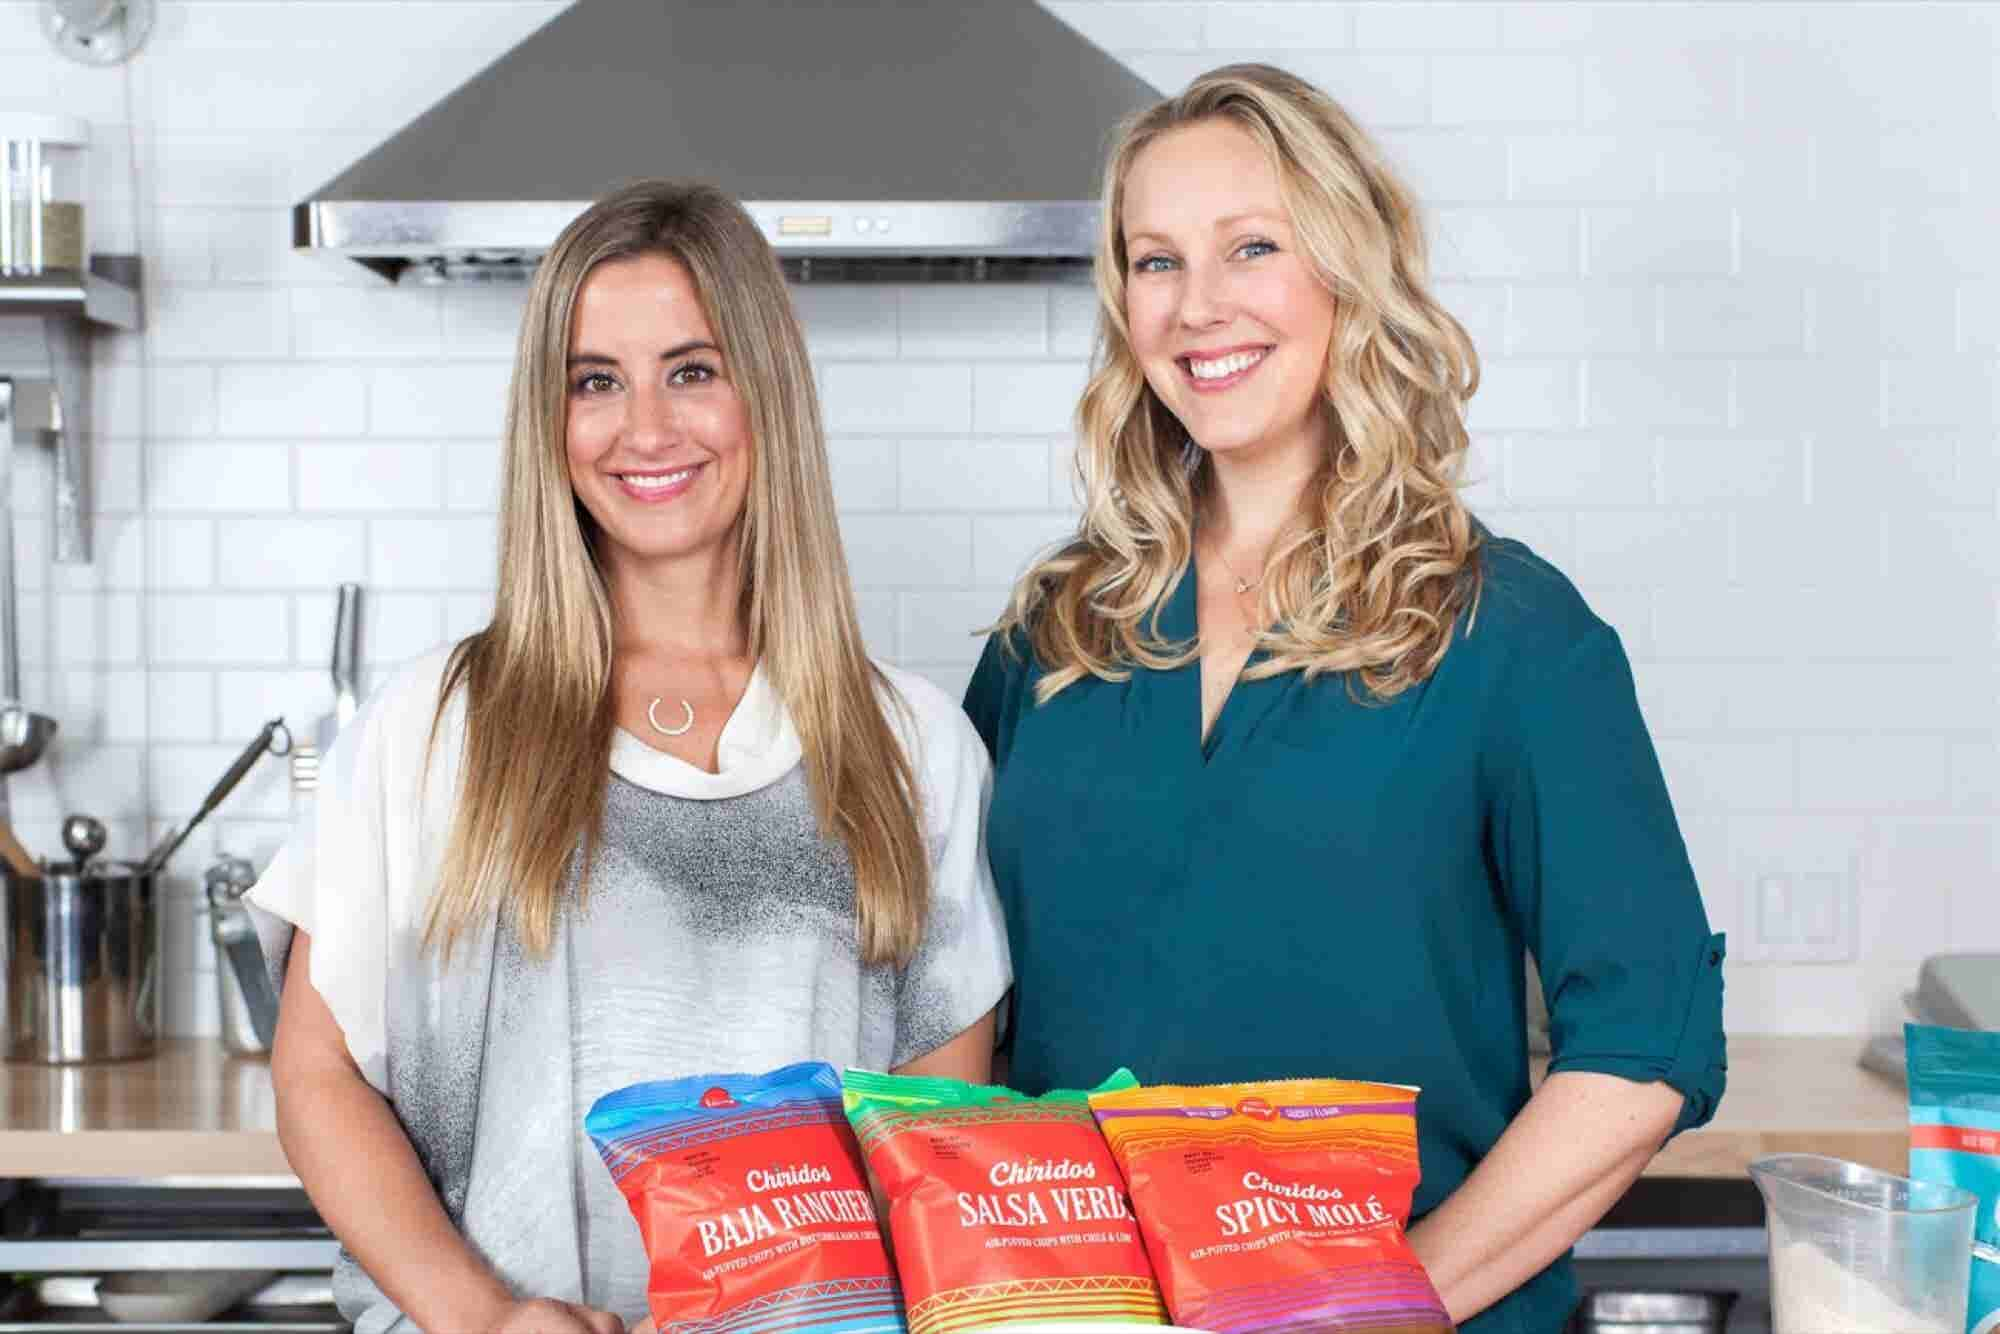 Meet the Entrepreneurs Driving the Edible Insect Movement